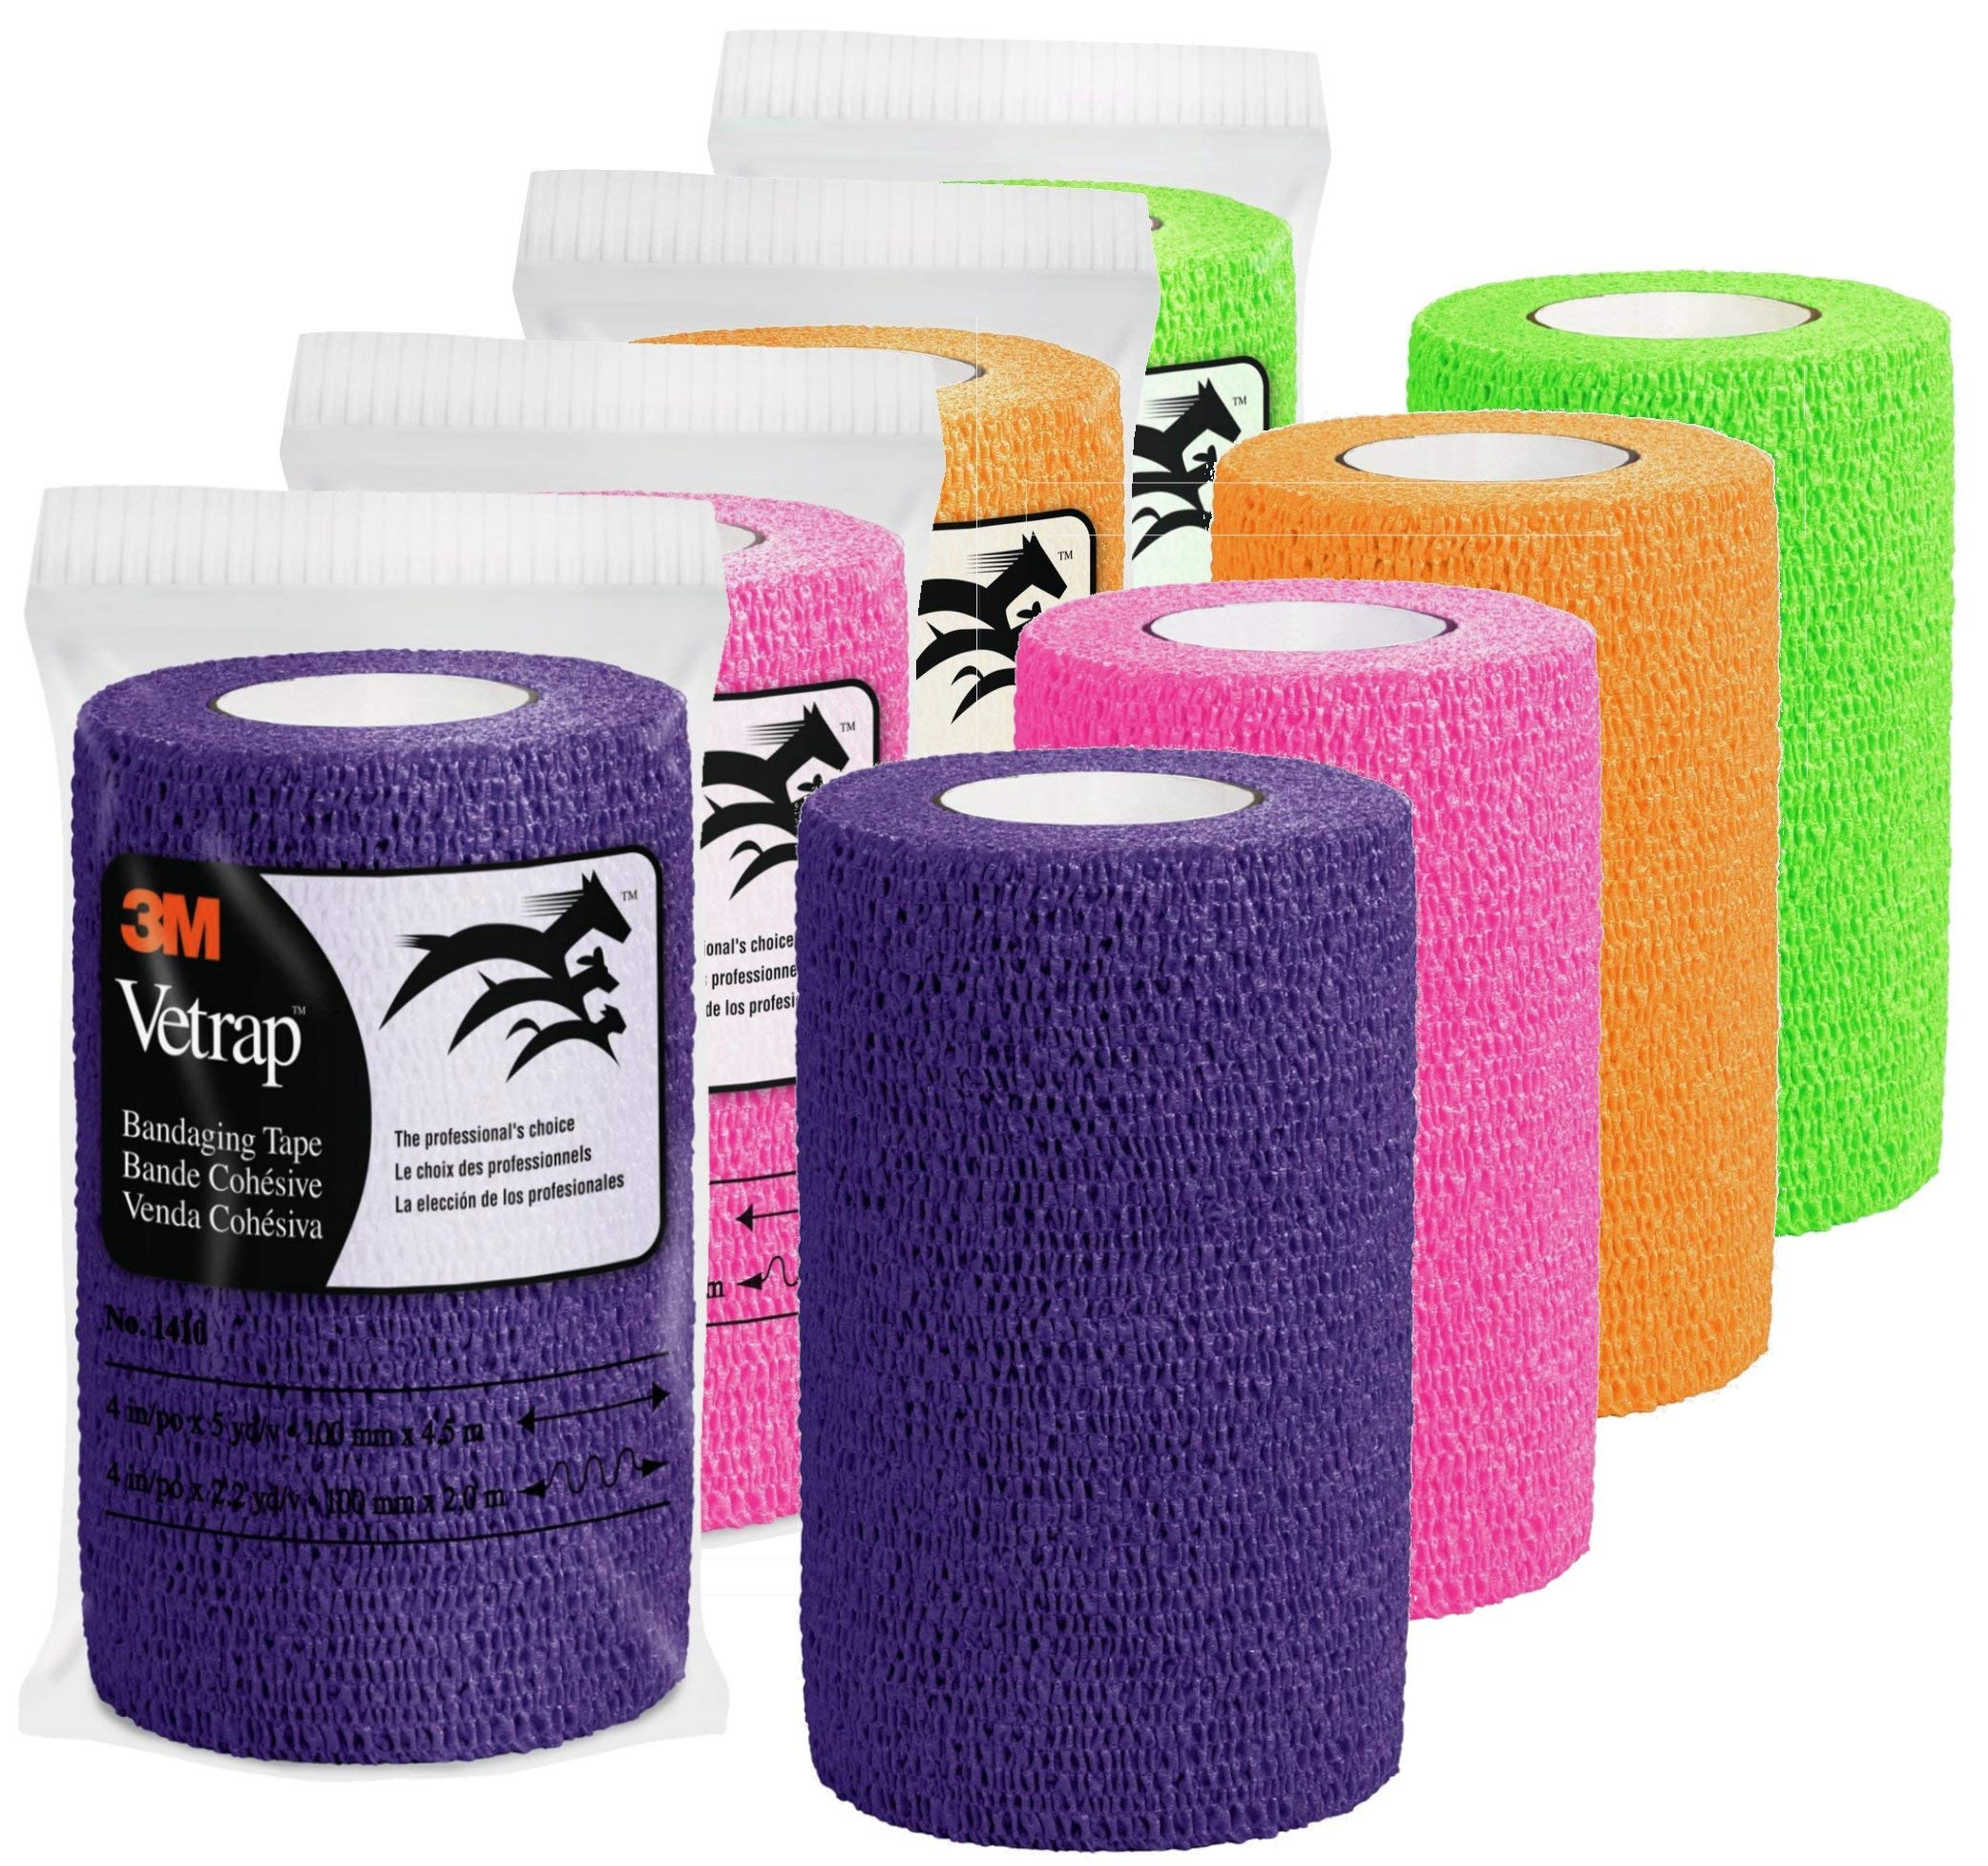 3M Vetrap 4'' Bright Color Bandaging Tape, 4''x 5 Yards, 3M Box, 12 Roll Case (Bright Color Combo)